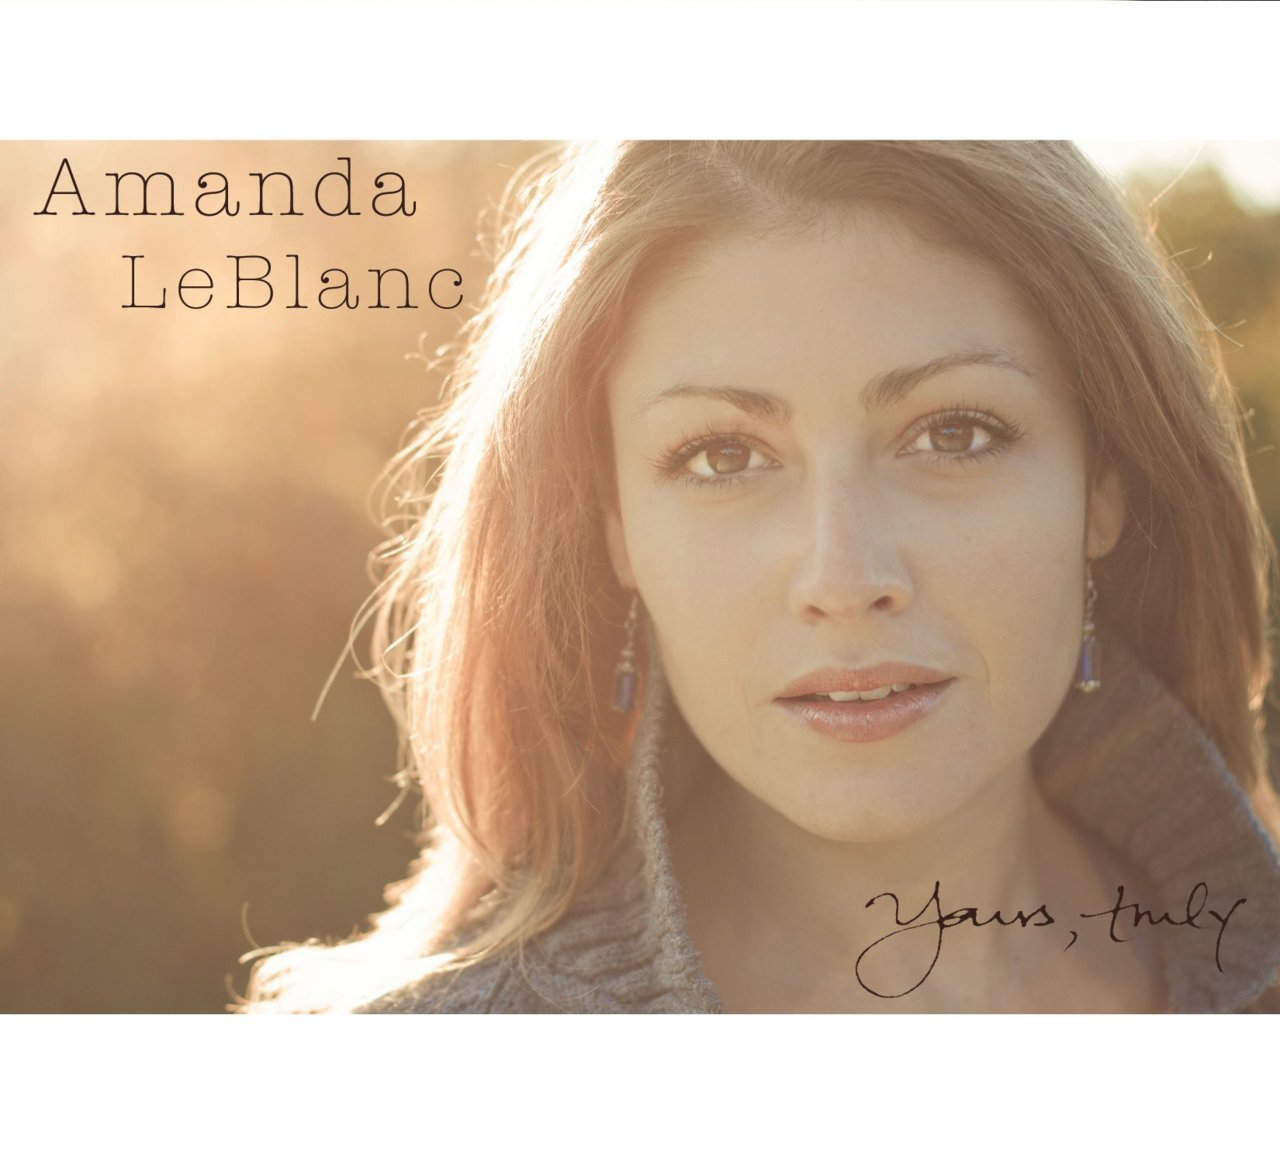 Last month, I had a photo-shoot with the super-talented Amanda LeBlanc for her upcoming album,  Yours Truly . We had a blast chasing the late afternoon sun in High Park and here is the resulting album cover. Be sure to check out her album when it's released December 5th!    www.amandaleblanc.ca